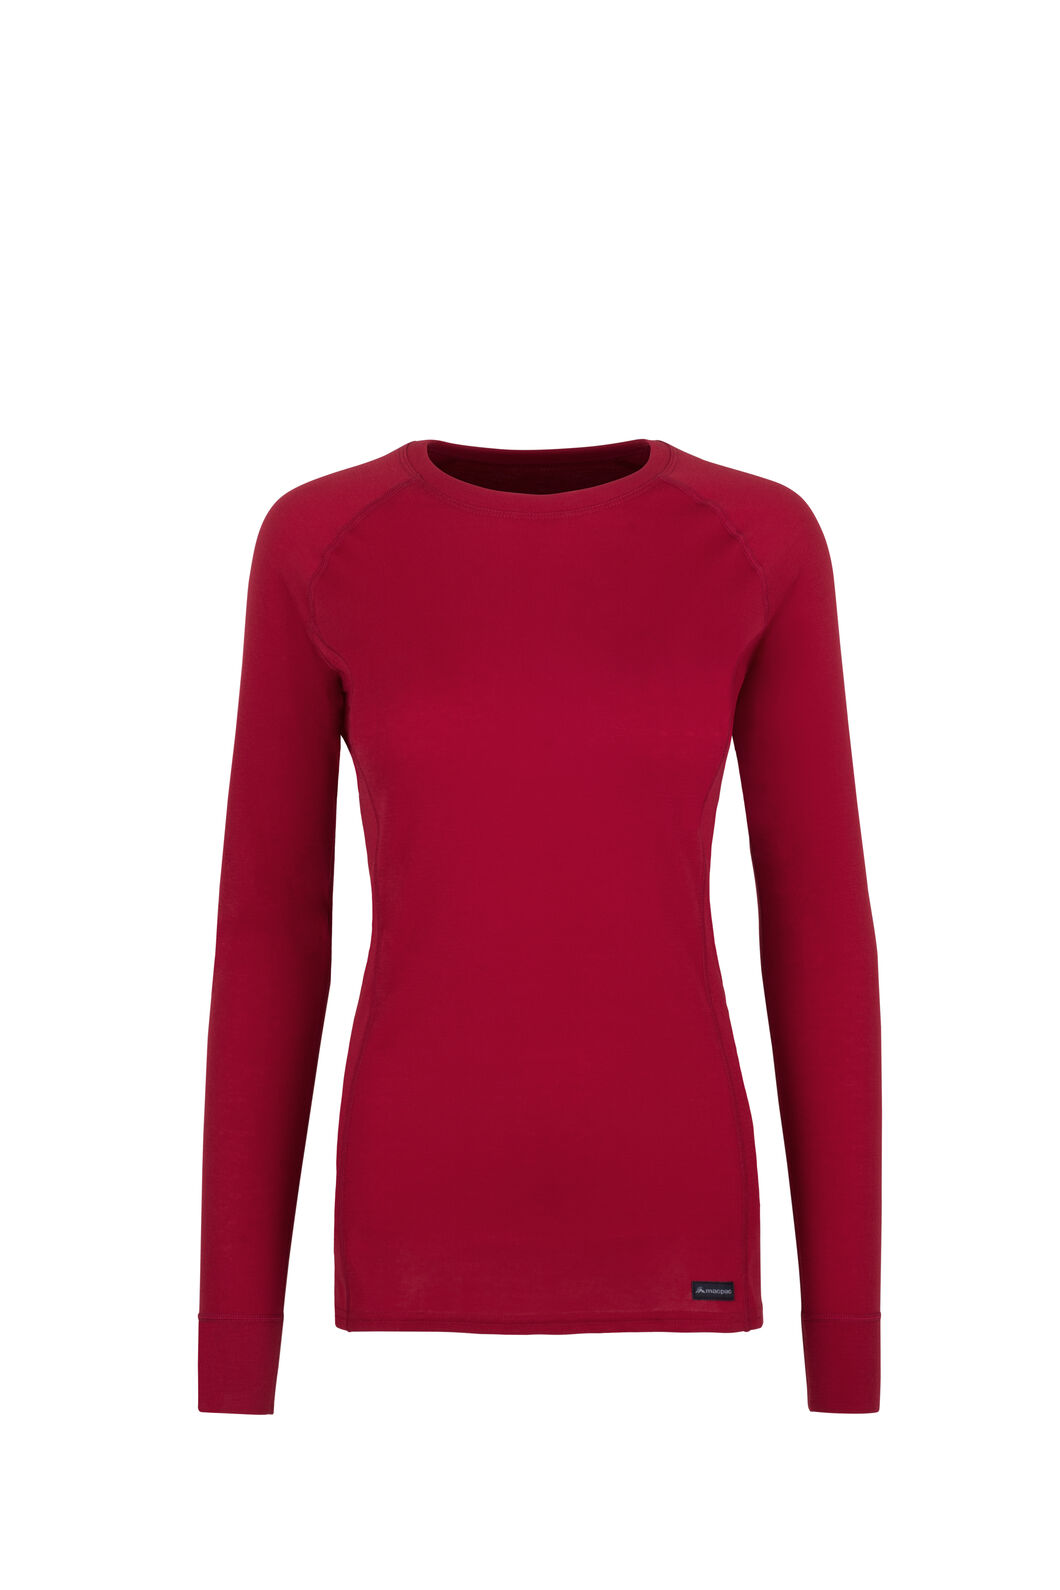 Macpac Geothermal Long Sleeve Top — Women's, Jester Red, hi-res